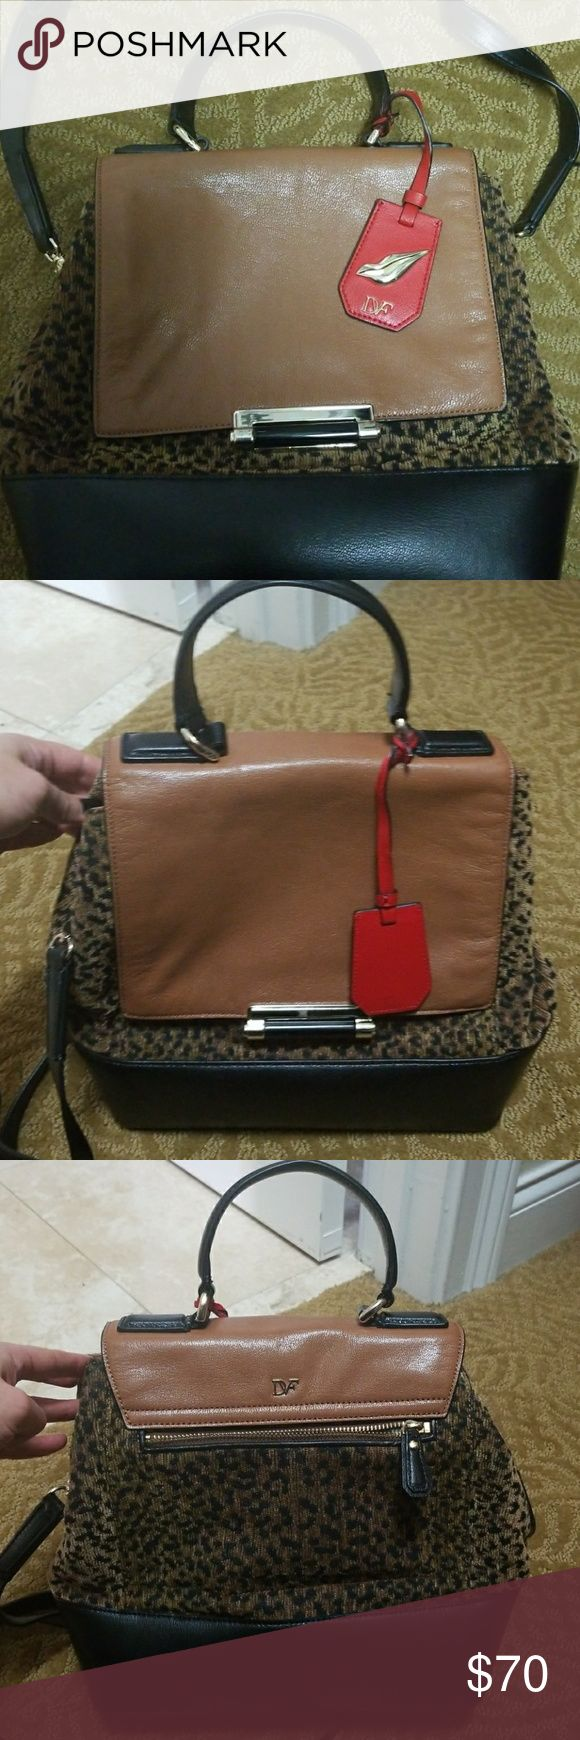 DVF Purse DVF. Tiger print. Leather and corduroy combo. Detachable shoulder strap. Like new. DVF Bags Shoulder Bags